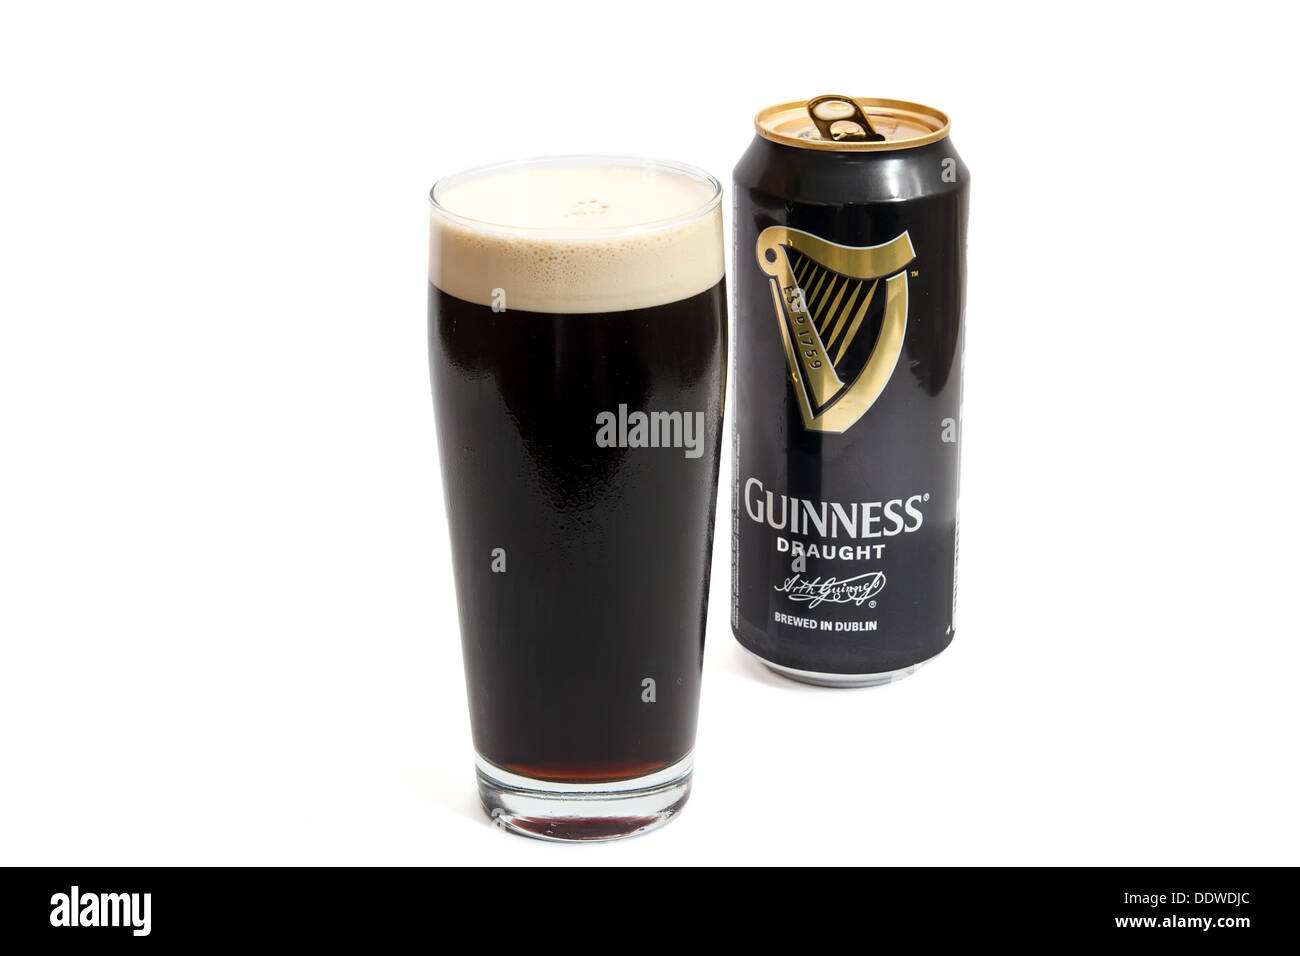 Pint of draught guinness and can - Stock Image